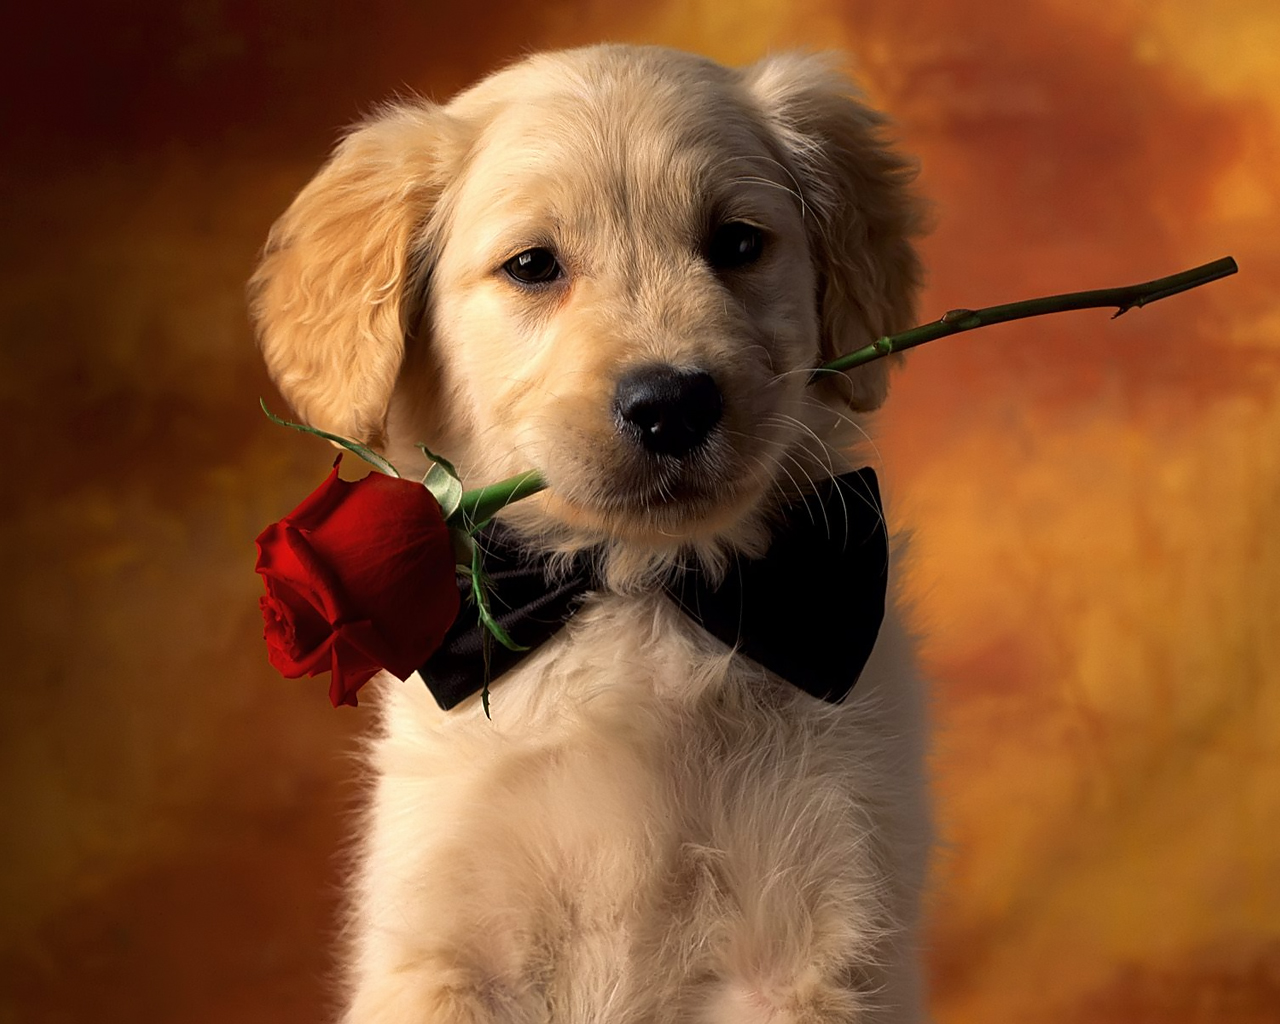 And Wallpapers Cute Puppies Wallpapers   Very Cute Puppies Wallpapers 1280x1024